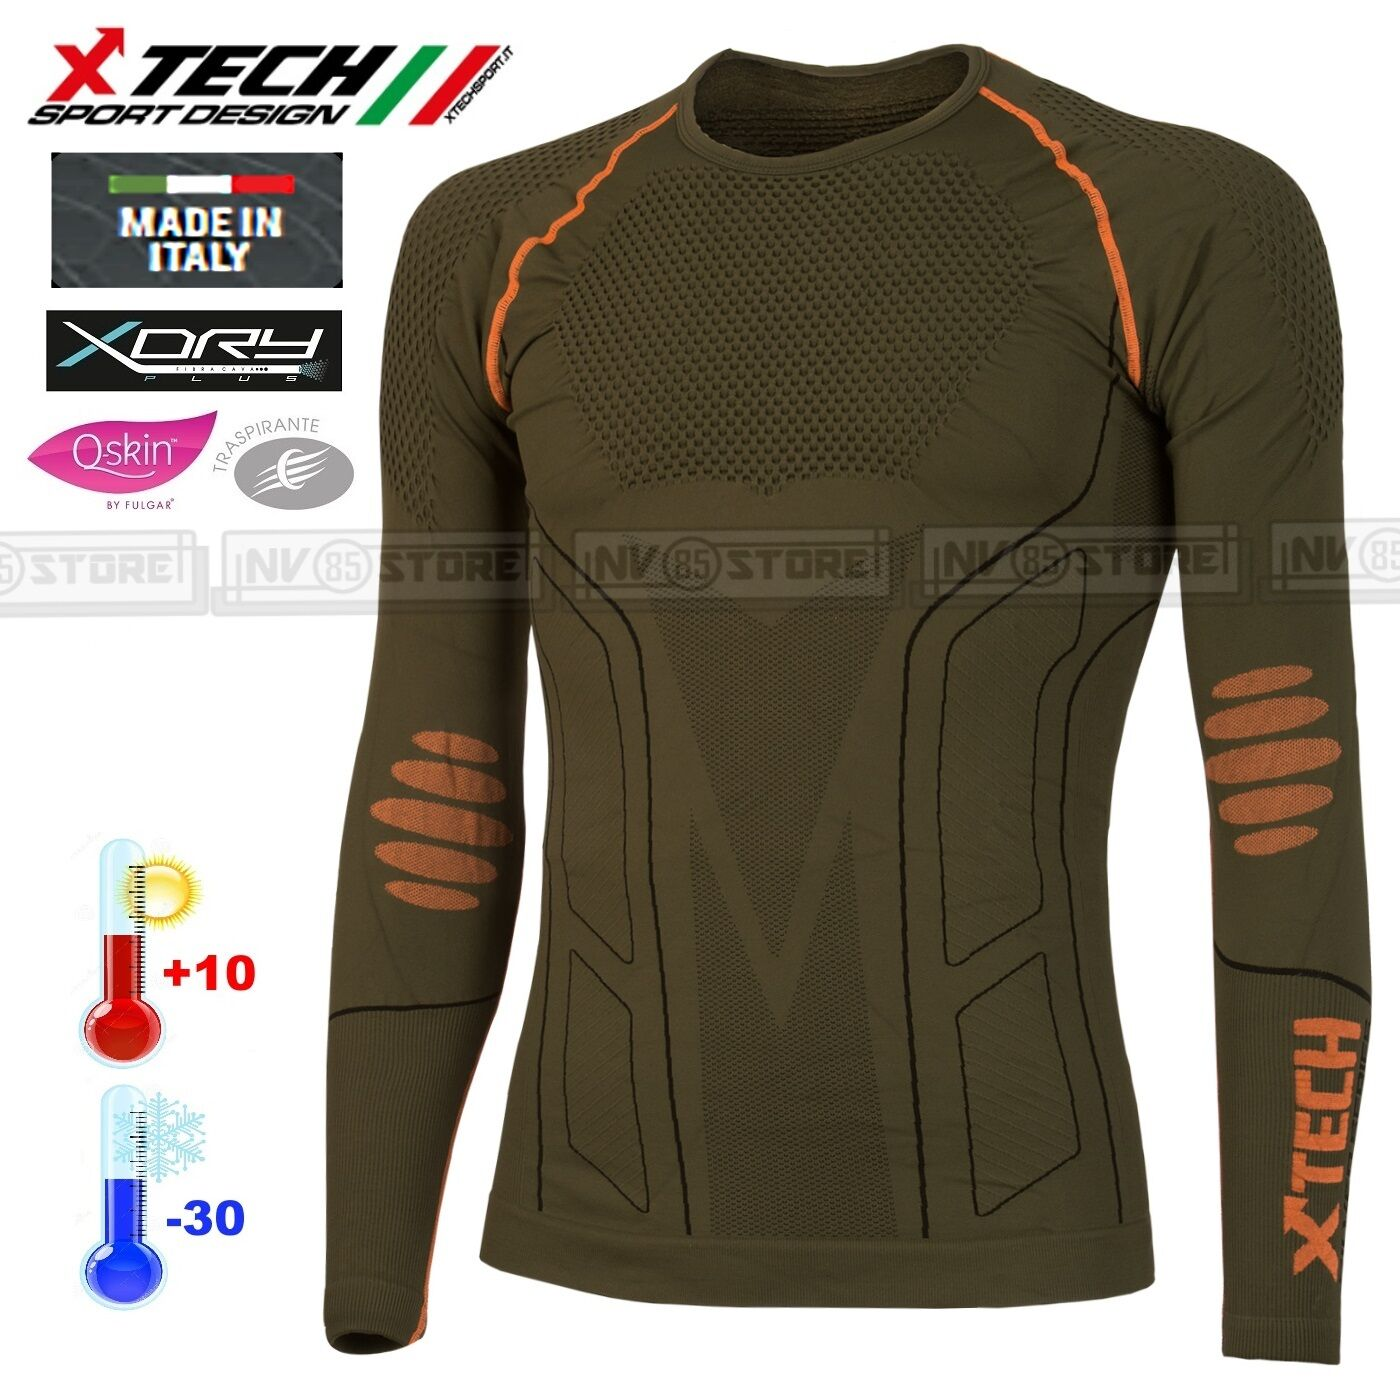 Jersey XTECH Technik Thermal X-TECH EVOLUTION -30° thermal Hemd Made in